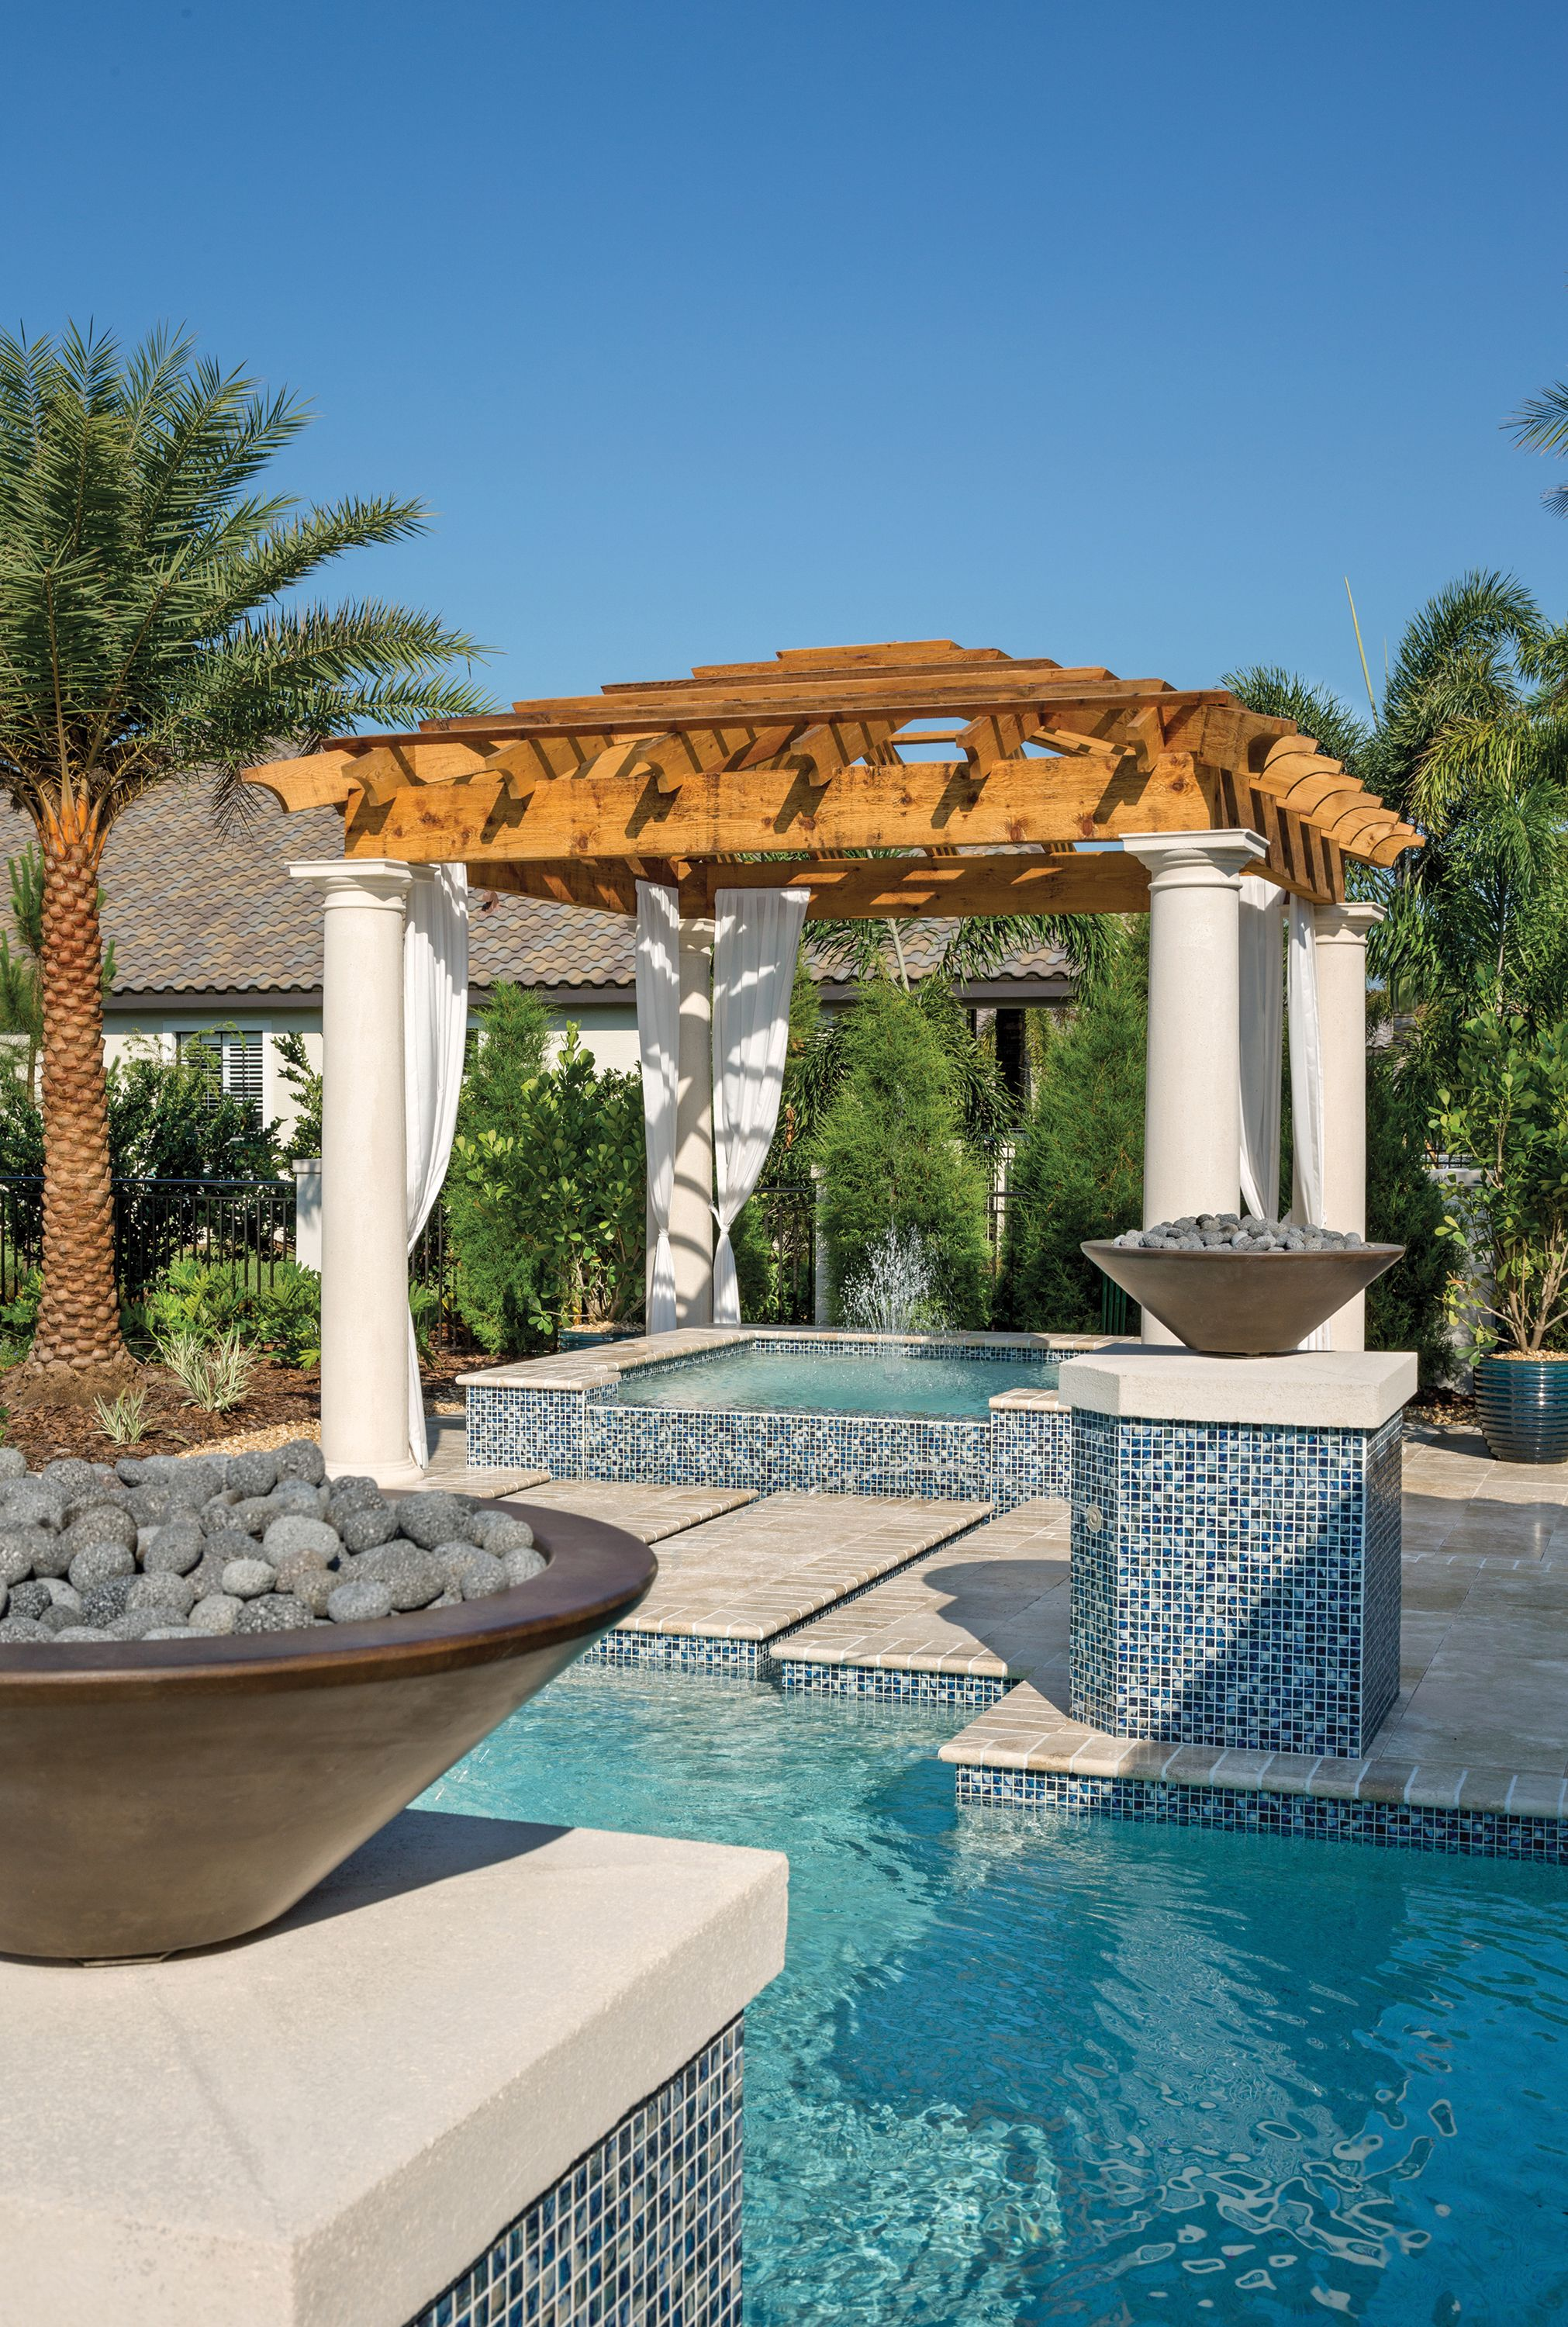 Arthur Rutenberg Homes Gazebo / Spa at the Modena model at The Concession. #theconcessionrealestate #arthurrutenberghomes